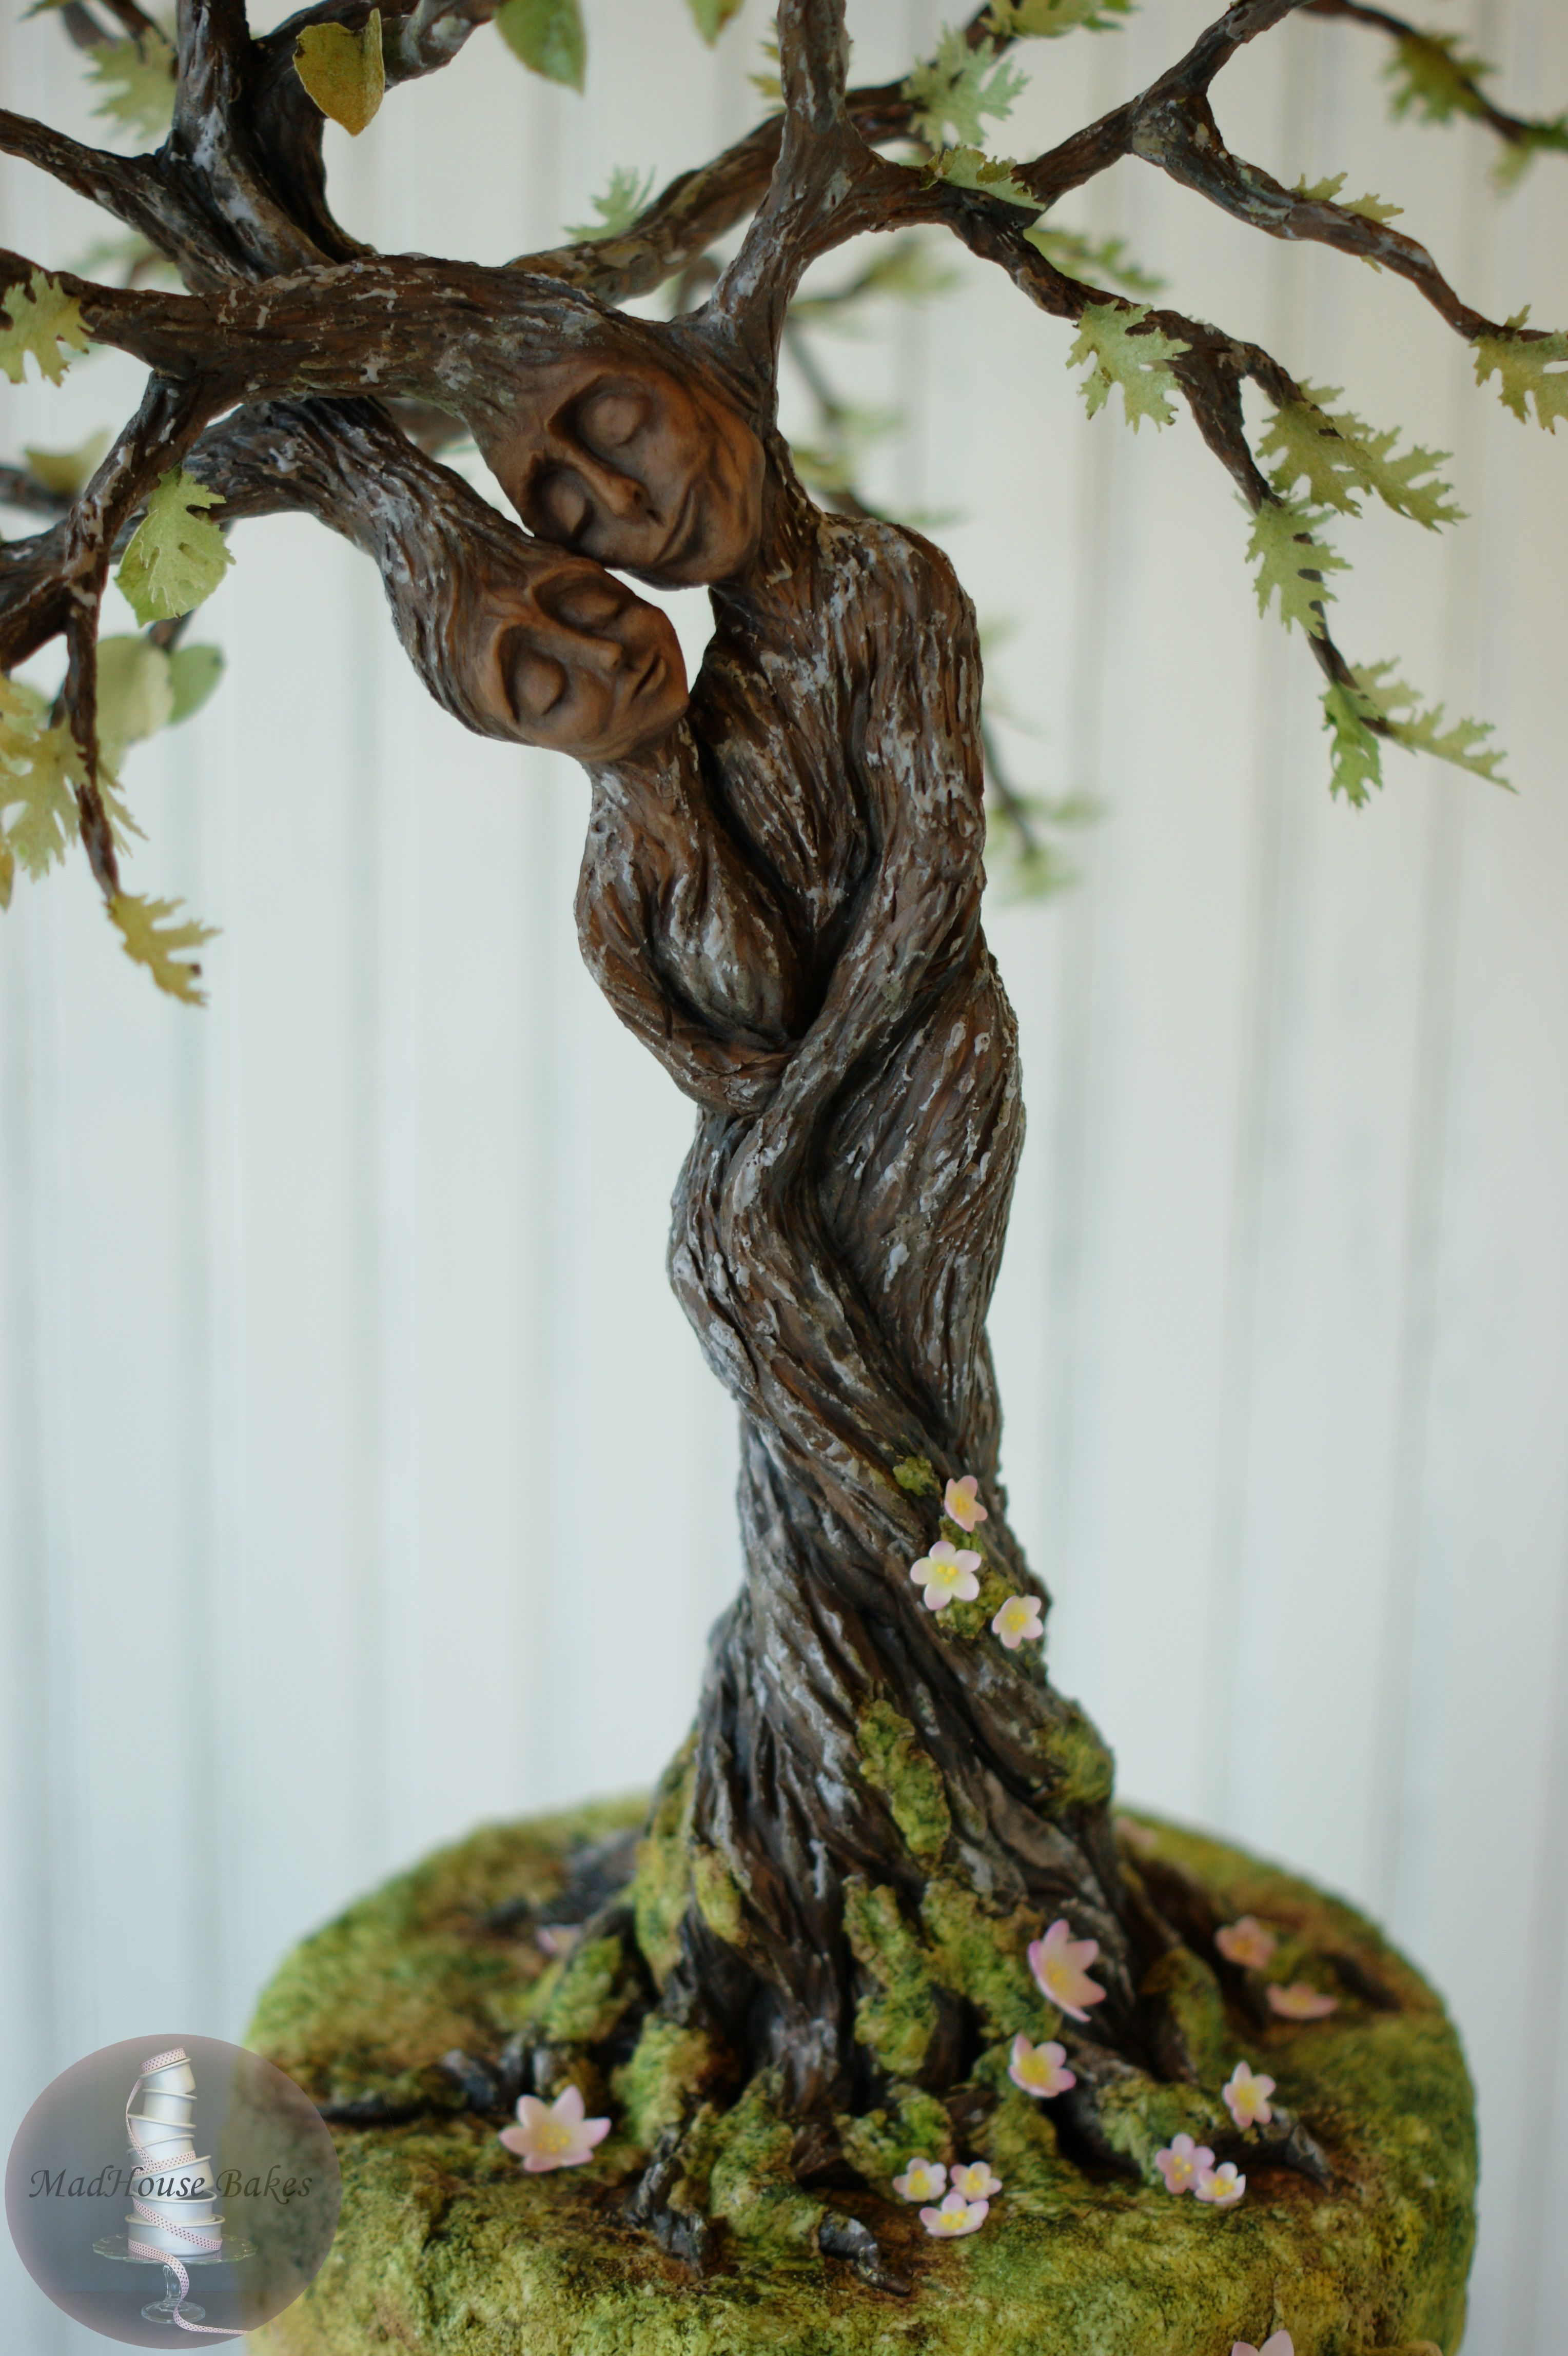 My Tree Lovers for Greece cake created for Love Around the World collaboration, by MadHouse Bakes.